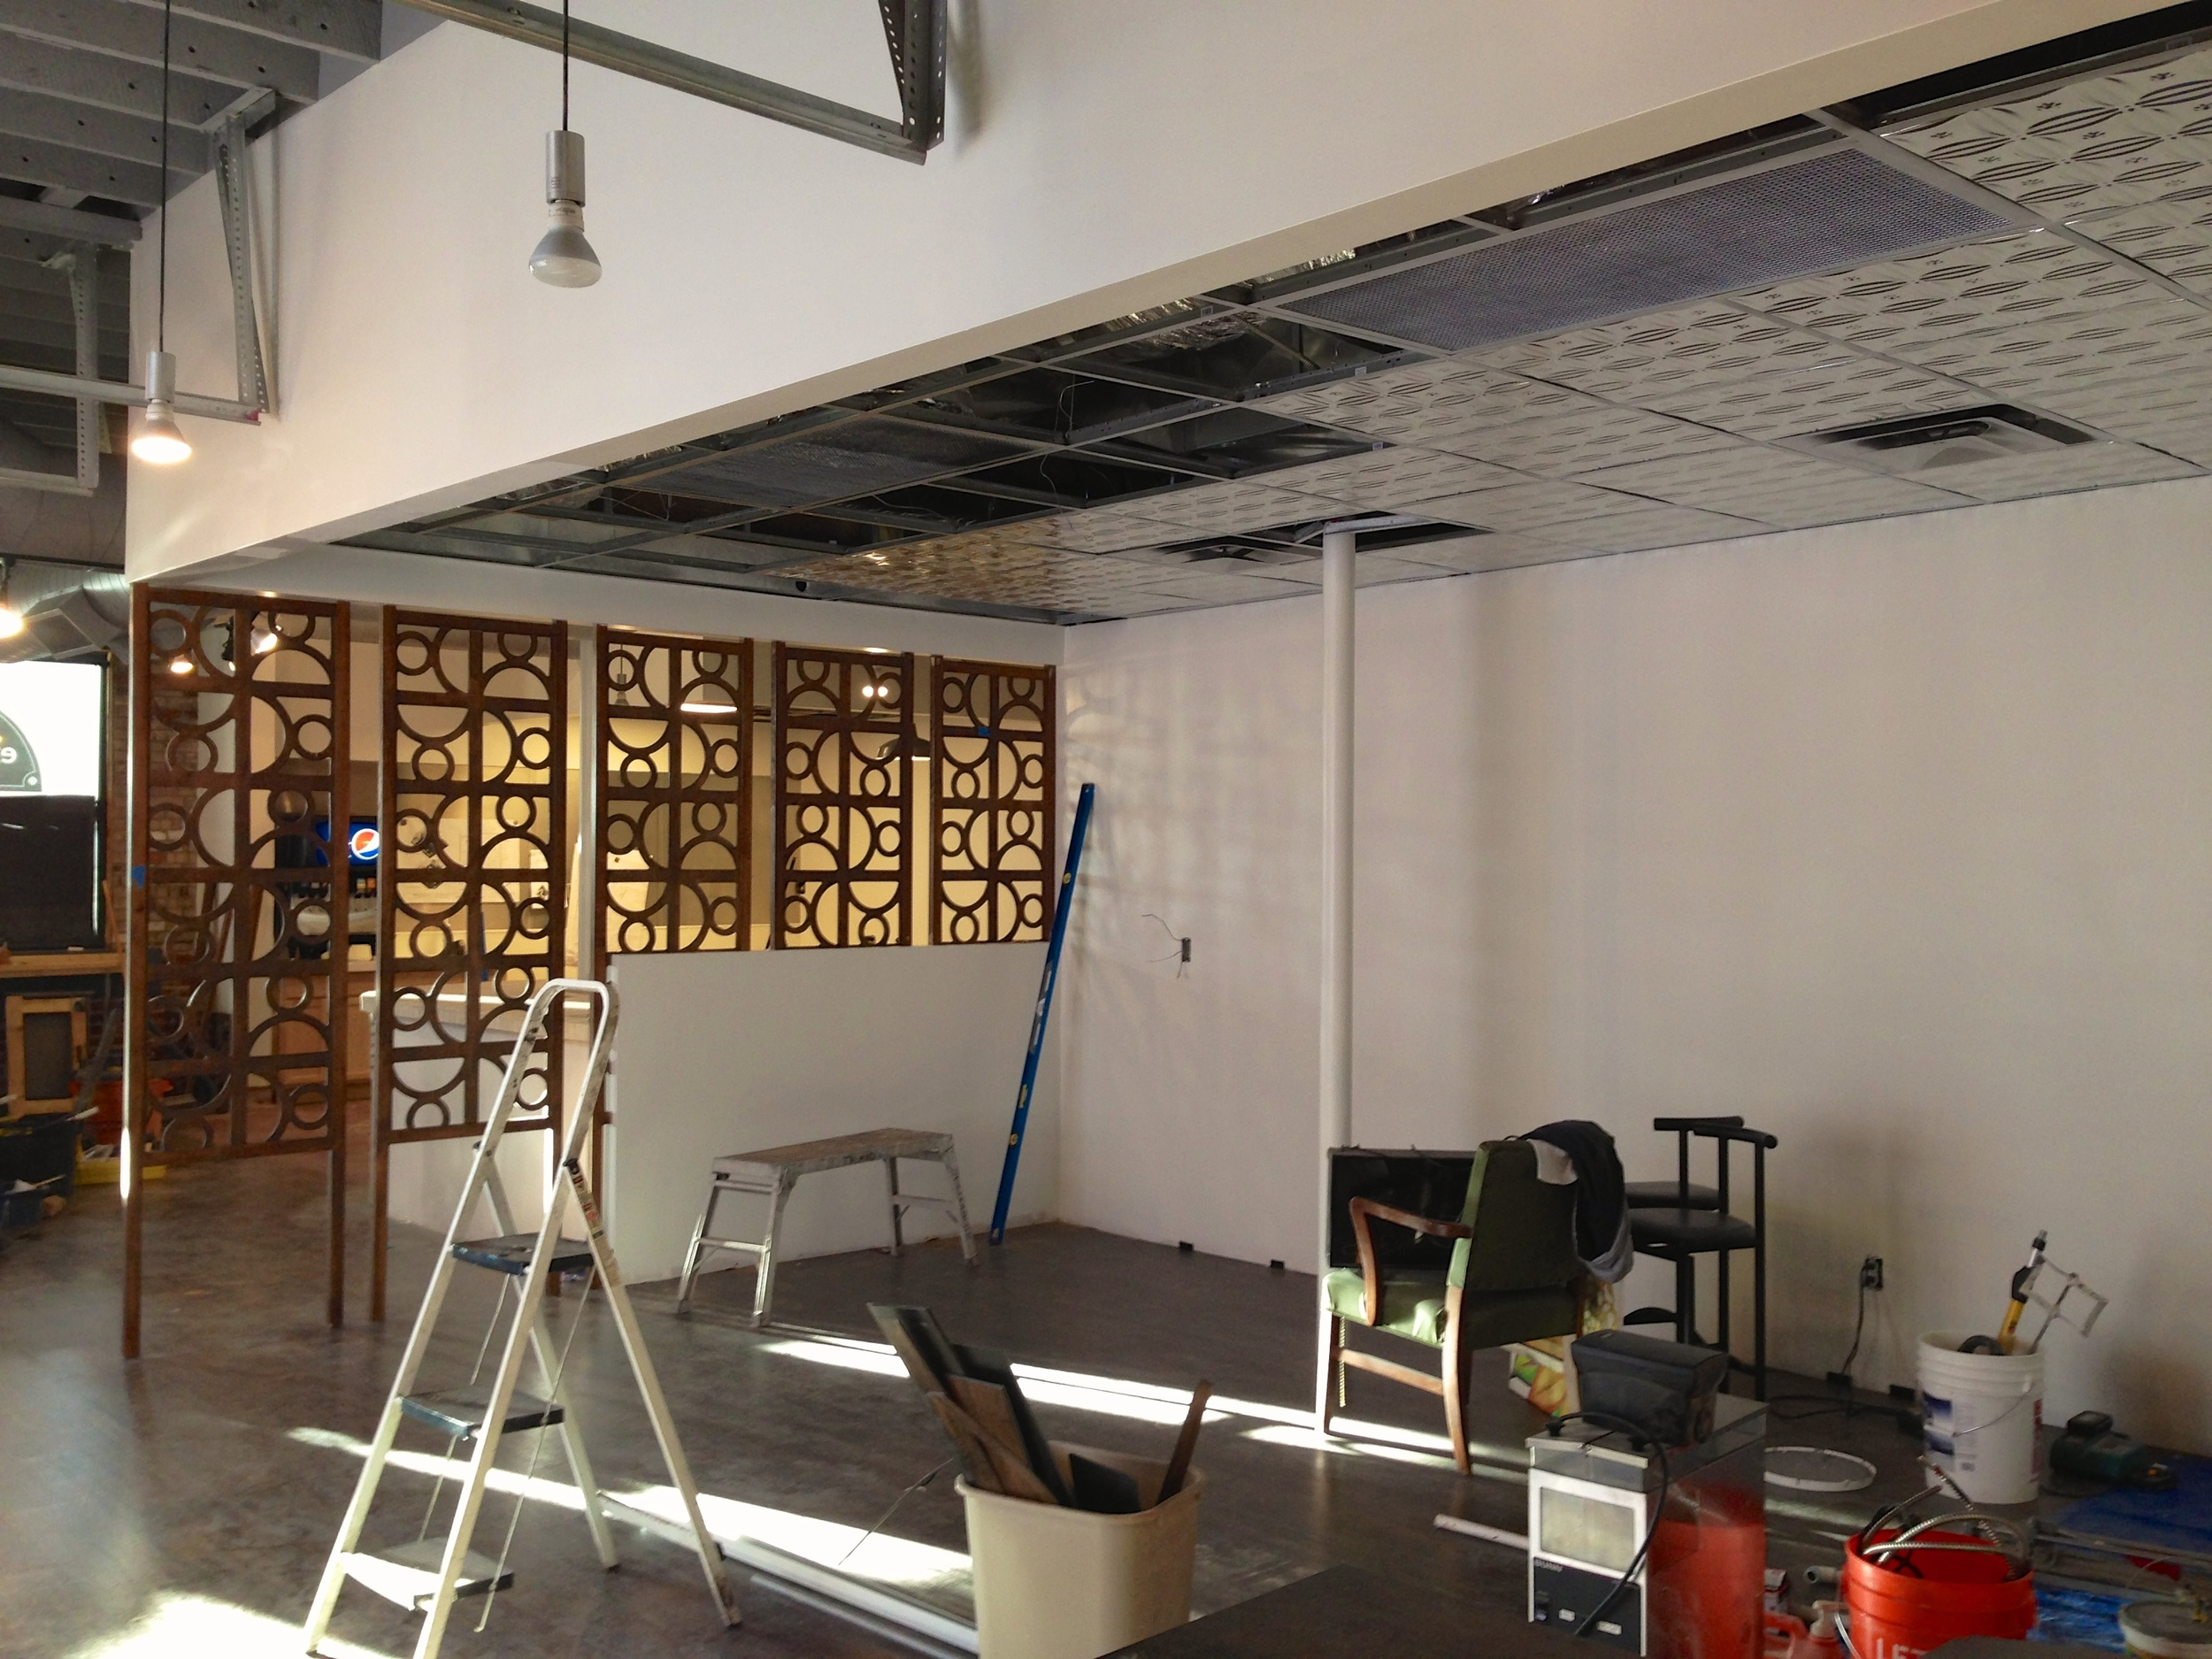 Decorative panels go up during construction.